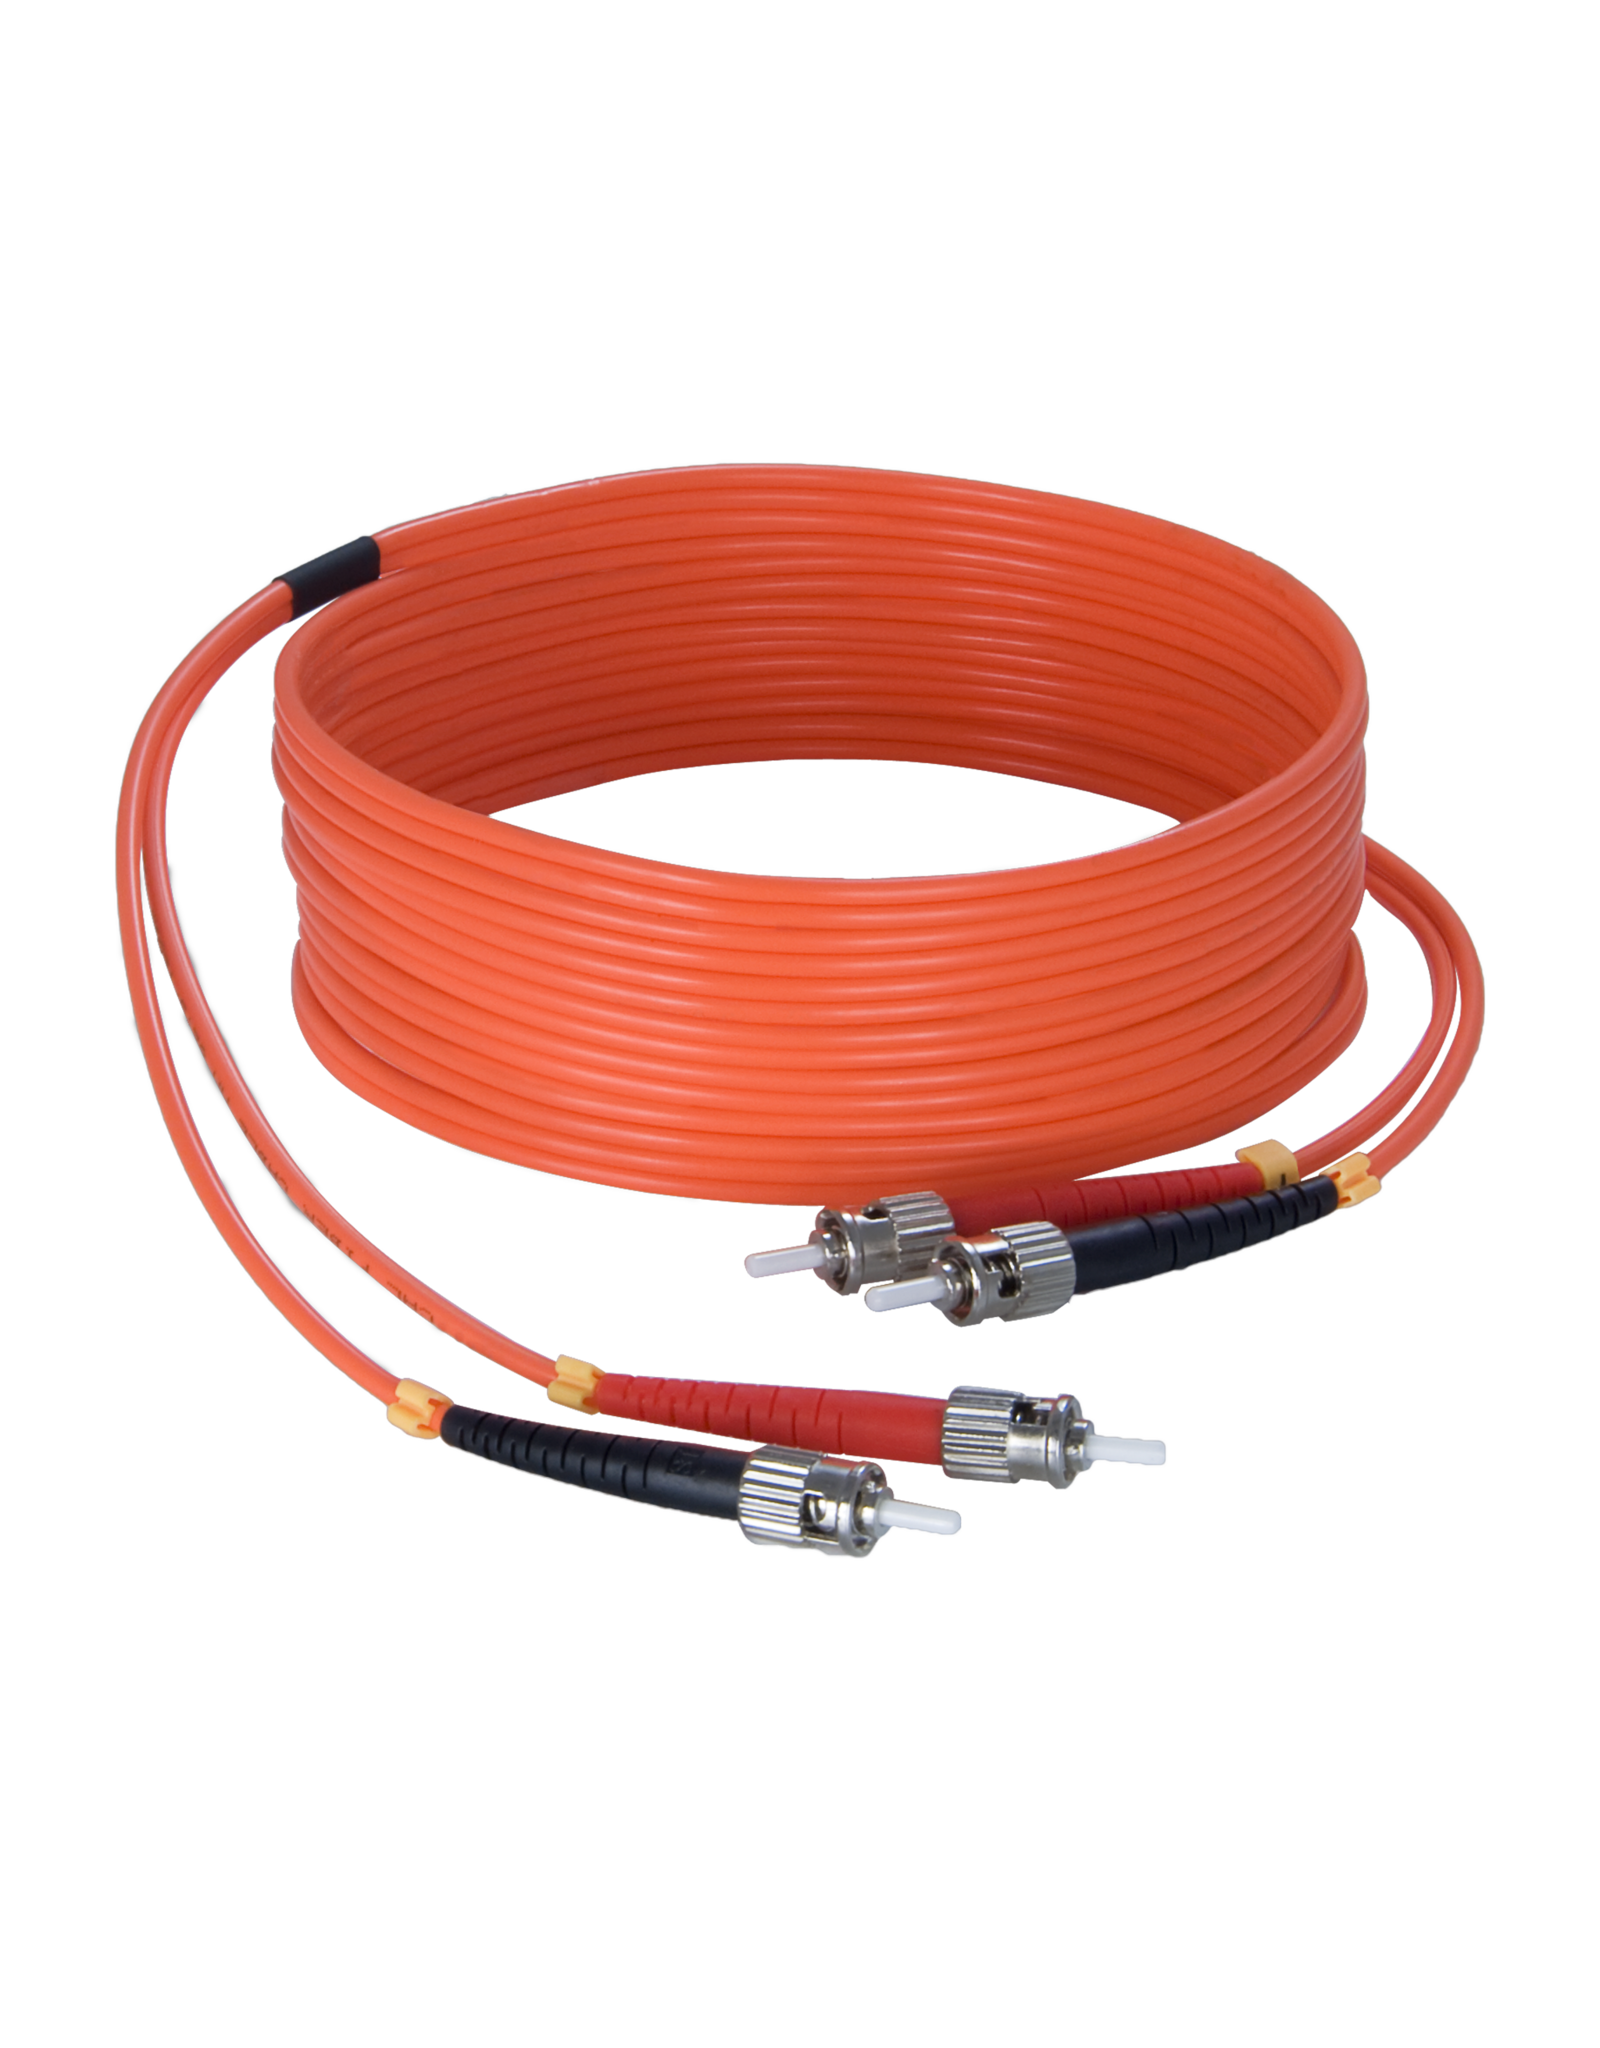 Audac Fiber optic cable - st/pc - st/pc - LSHF 2 meter